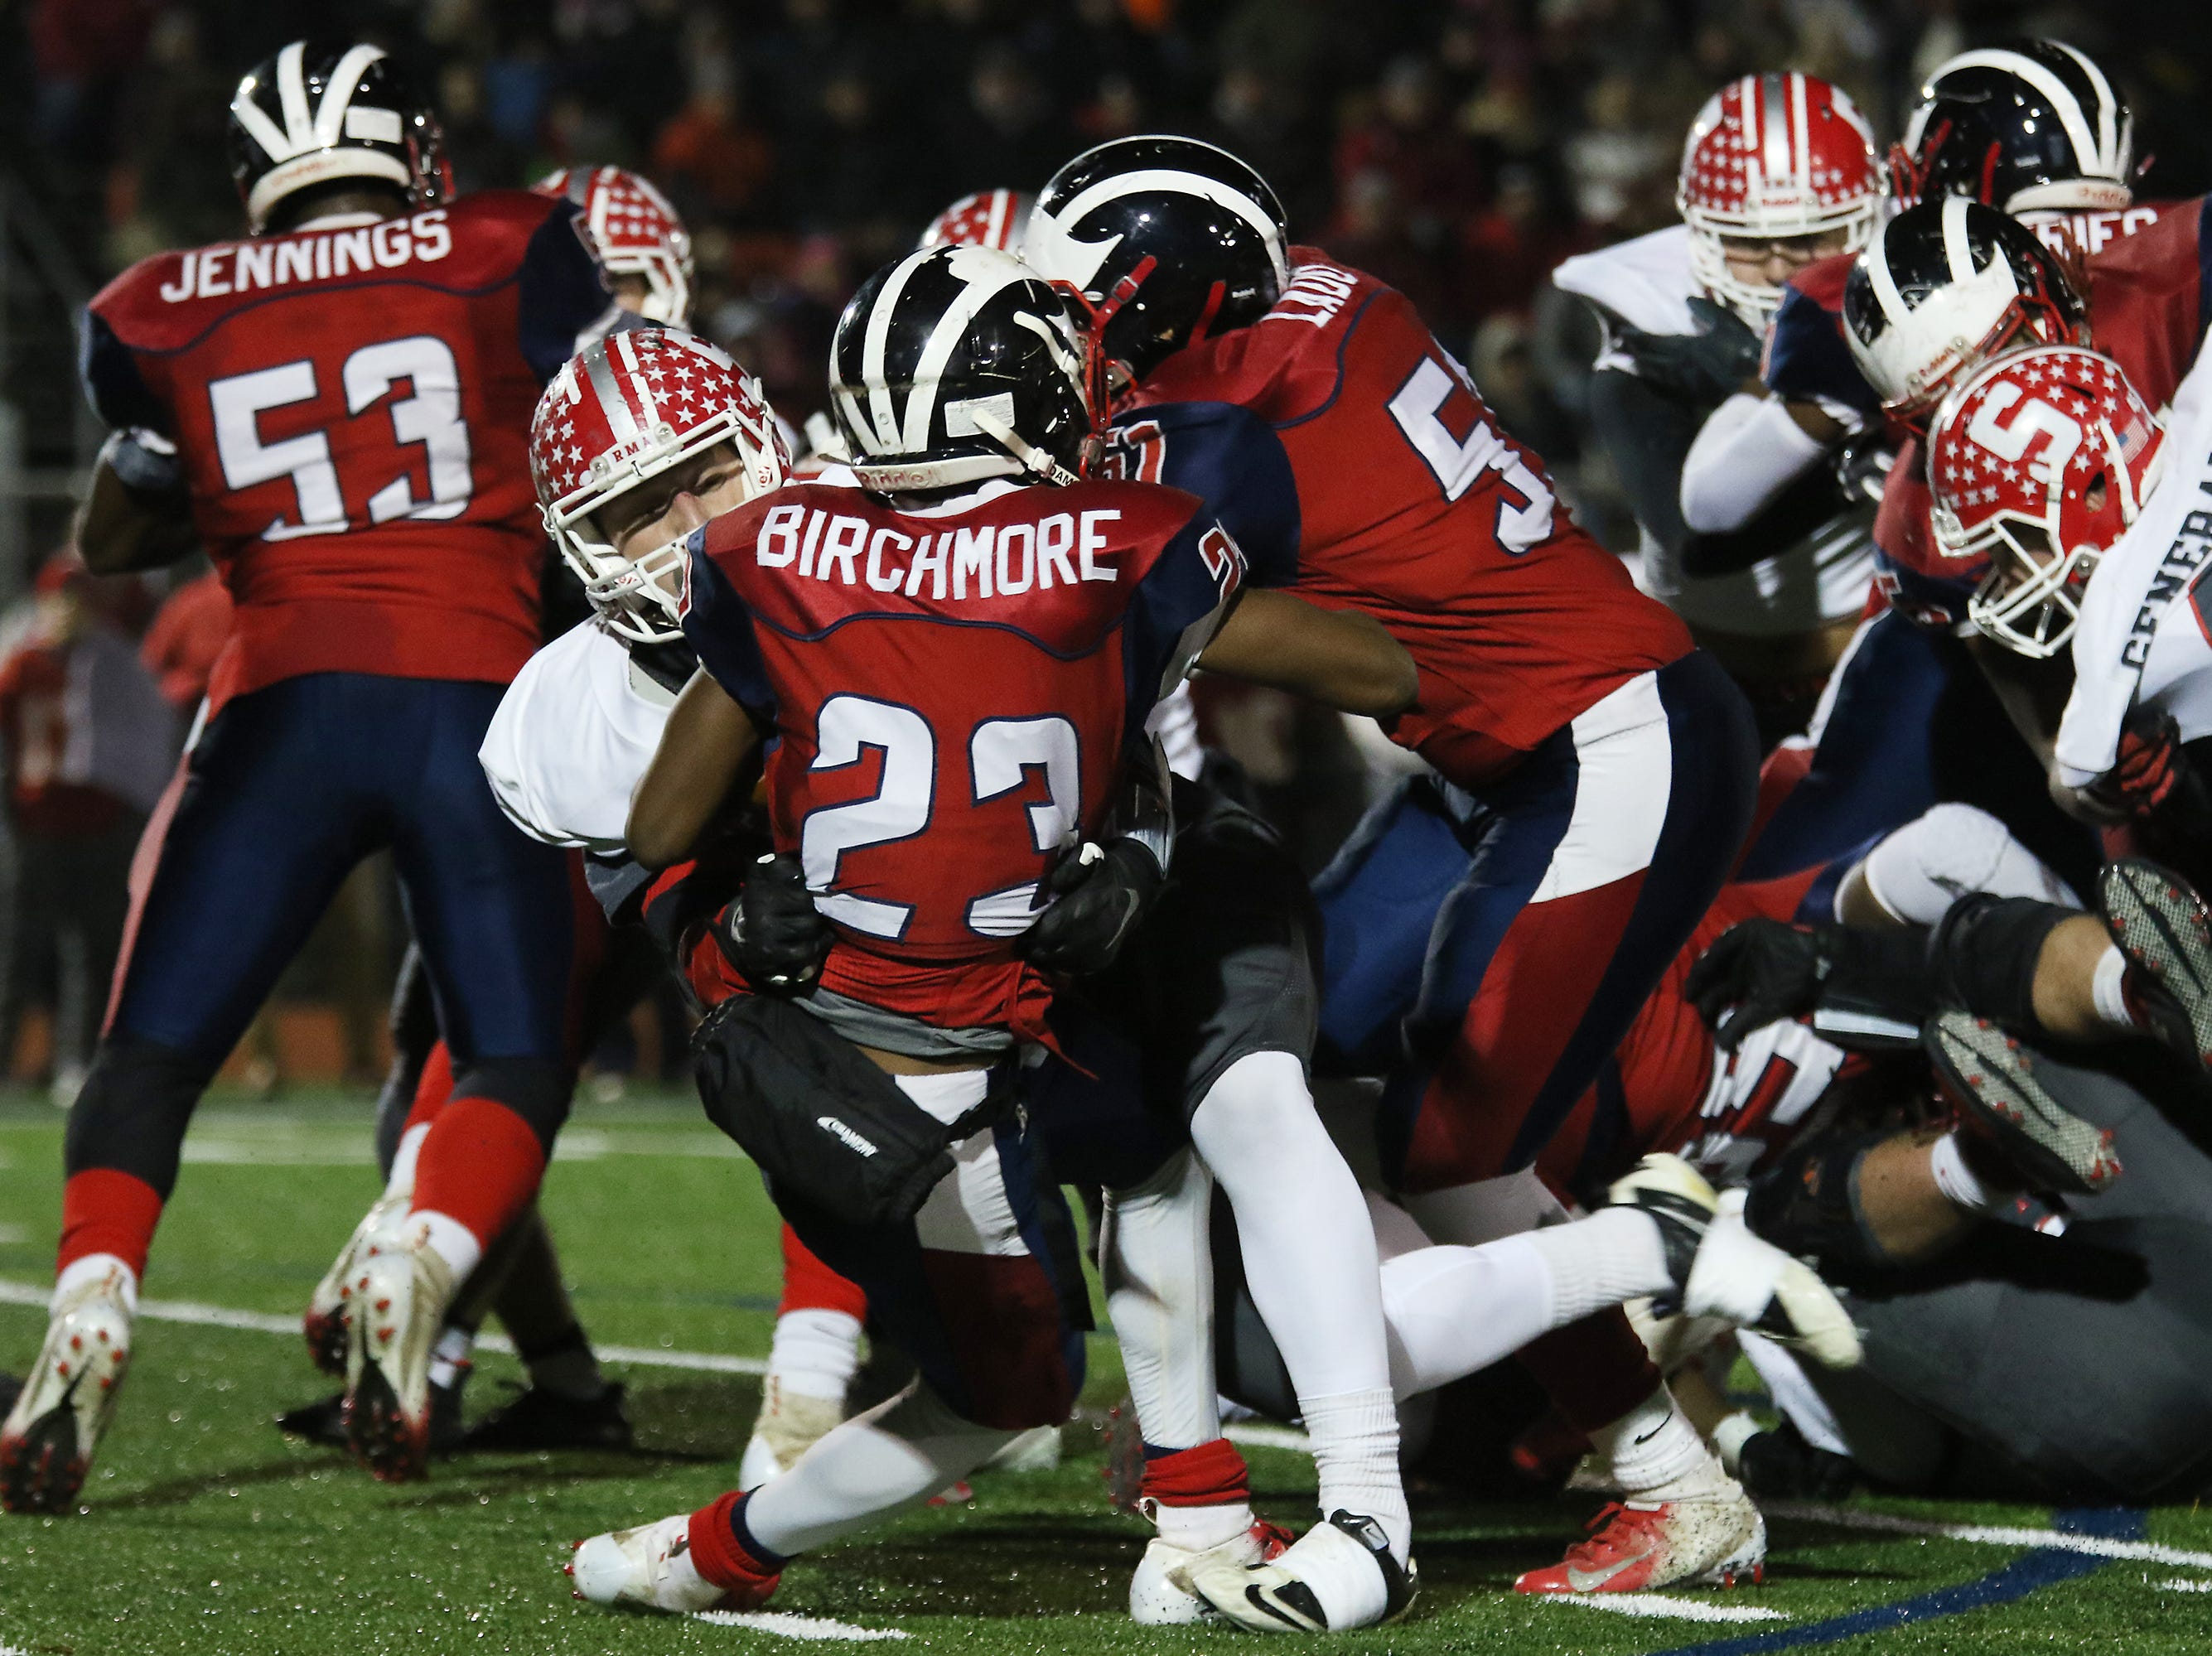 A Sheridan defender tackles an Eastmoor ball carrier.